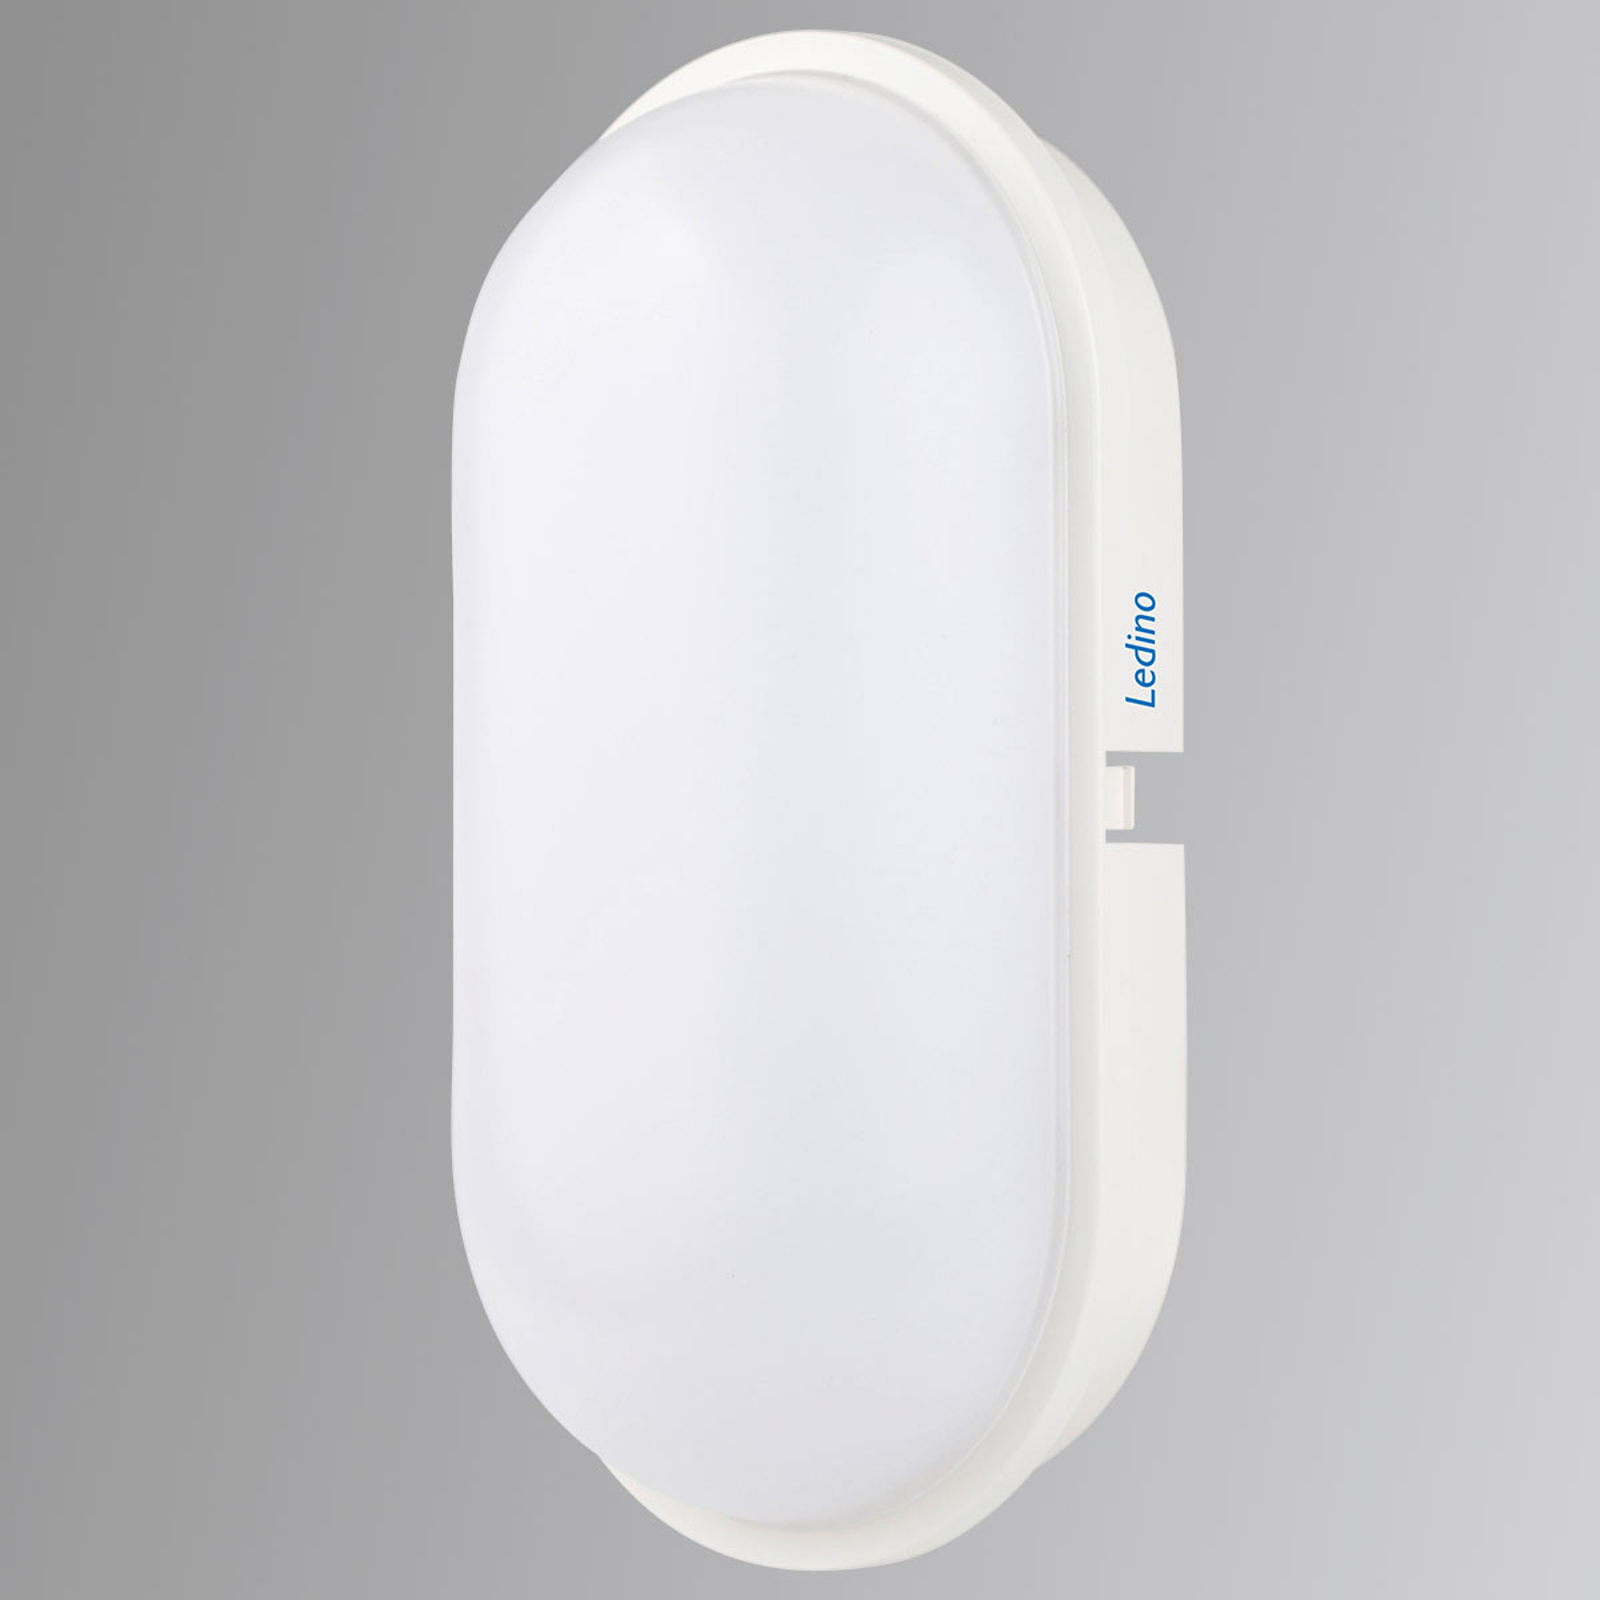 Quickly installed Schwabing XXL LED wall light_6022404_1